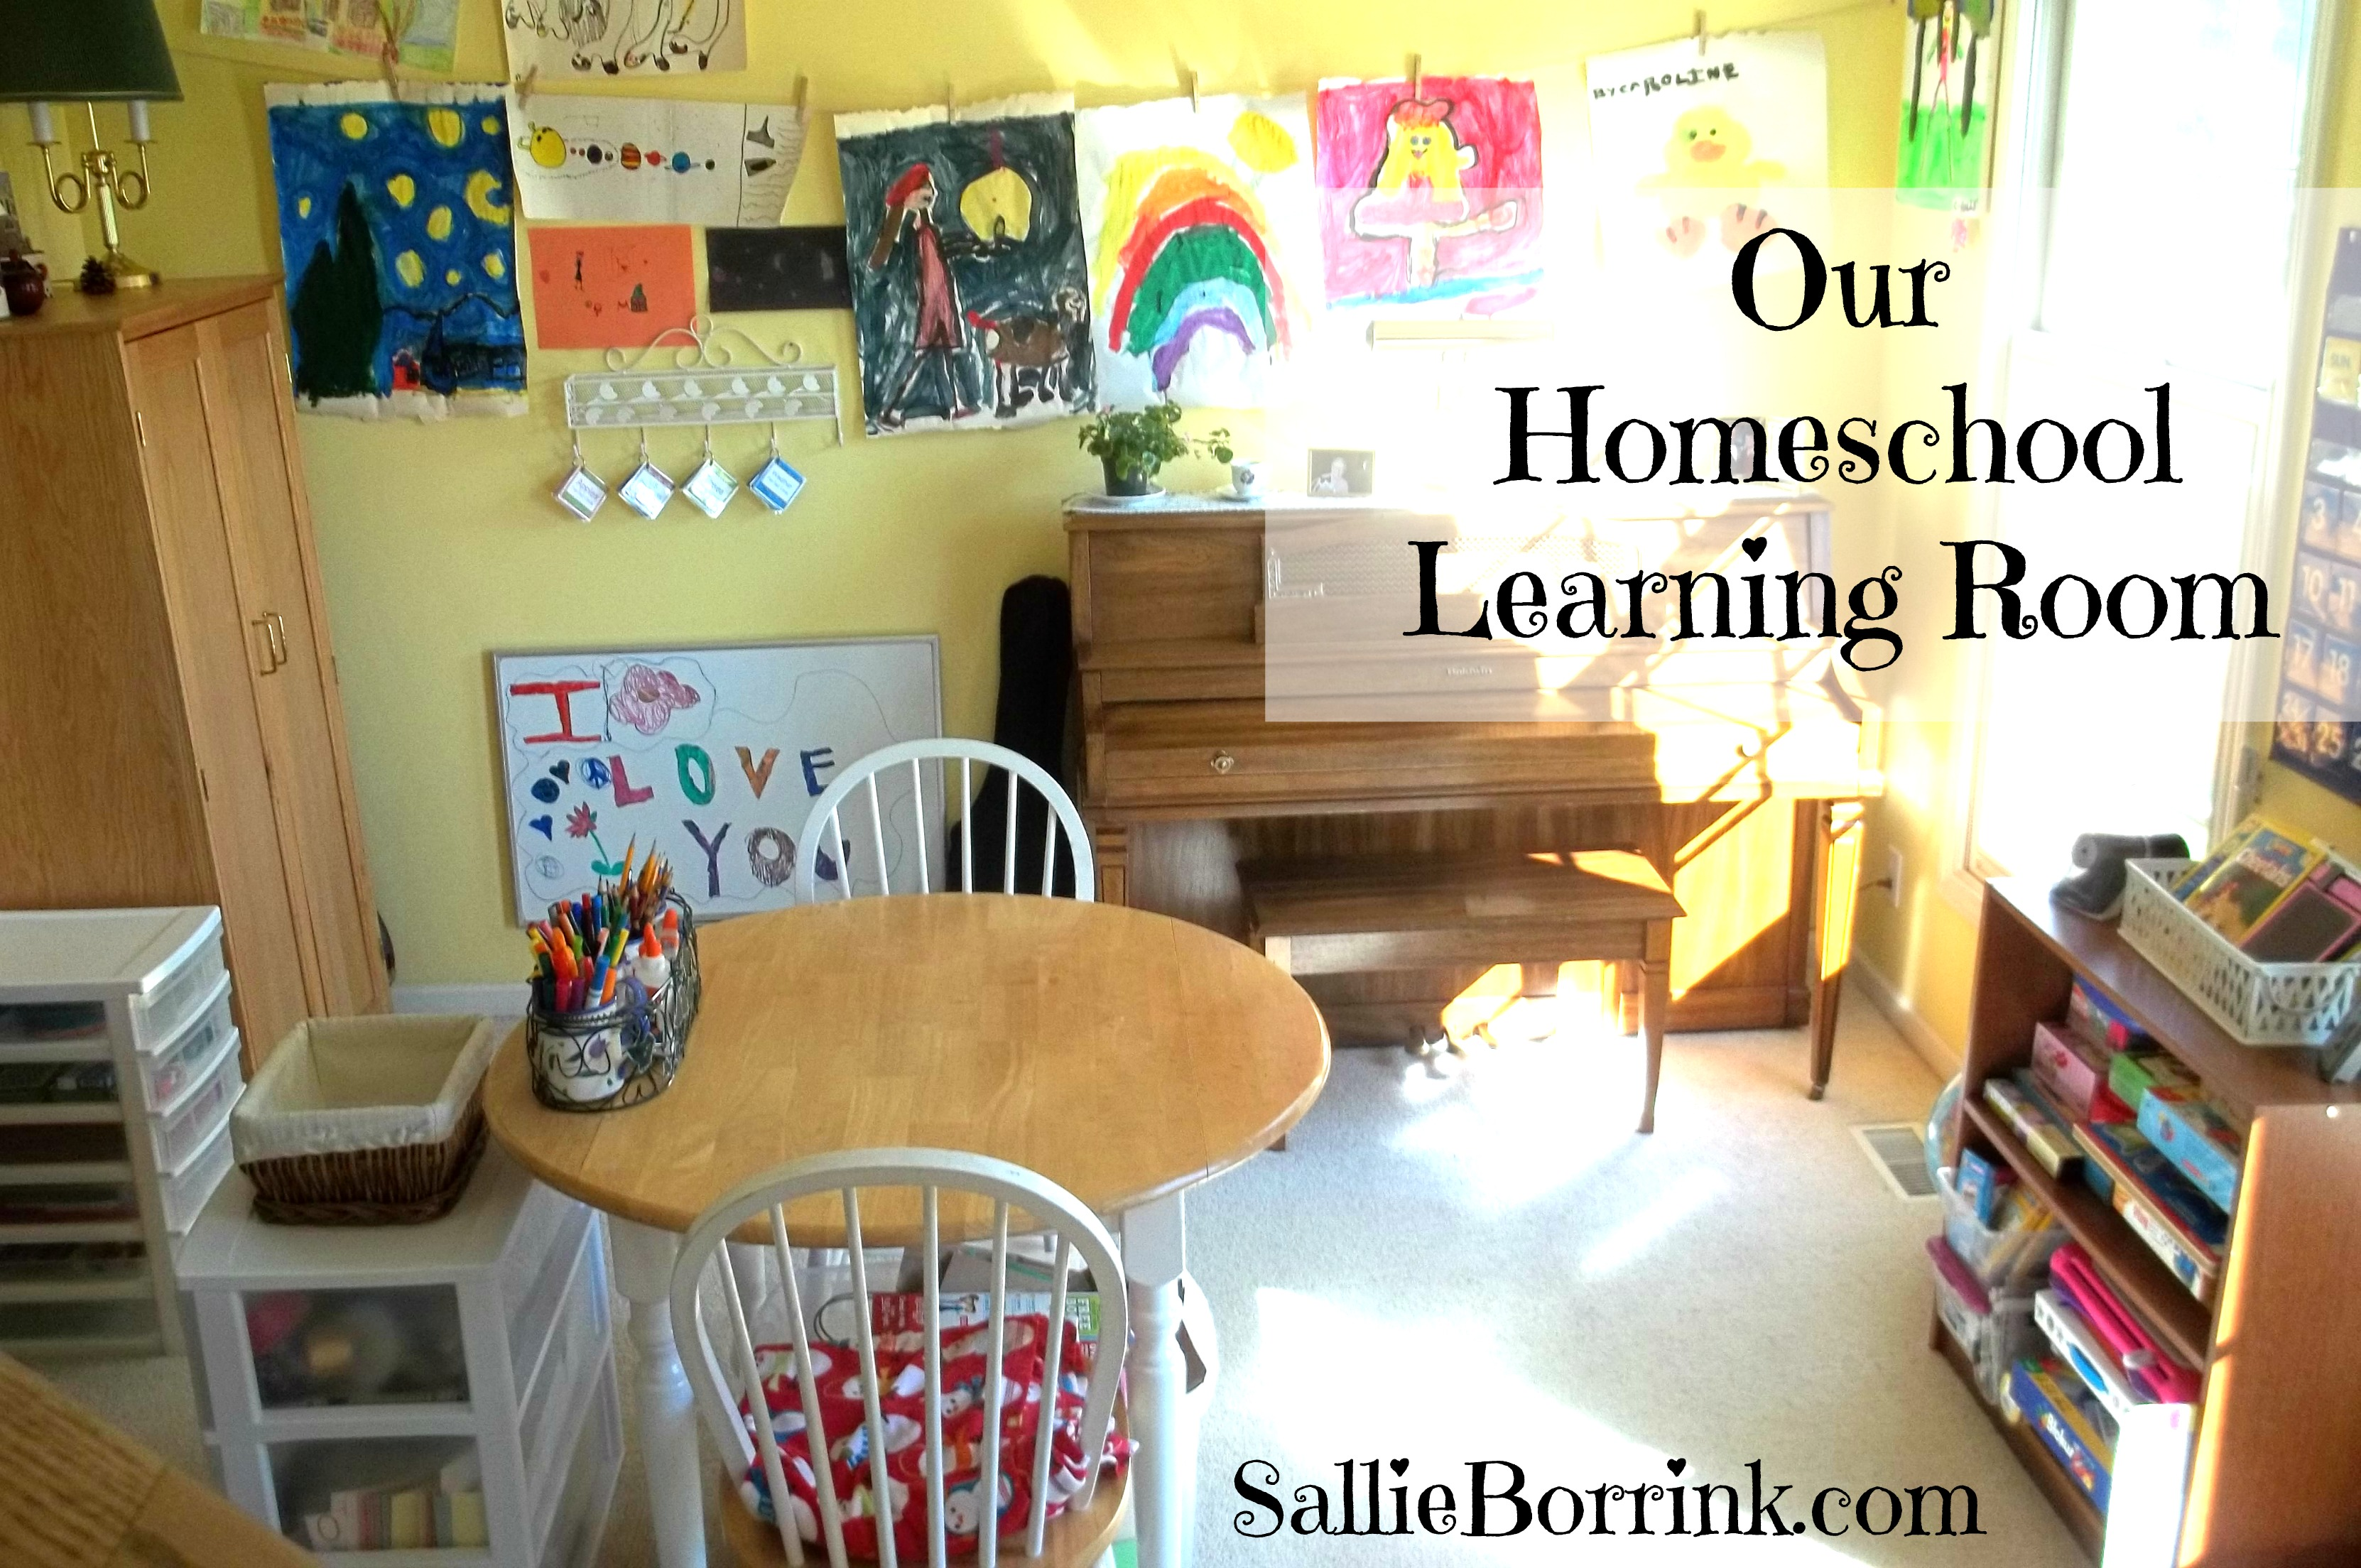 Our Homeschool Learning Room 2014